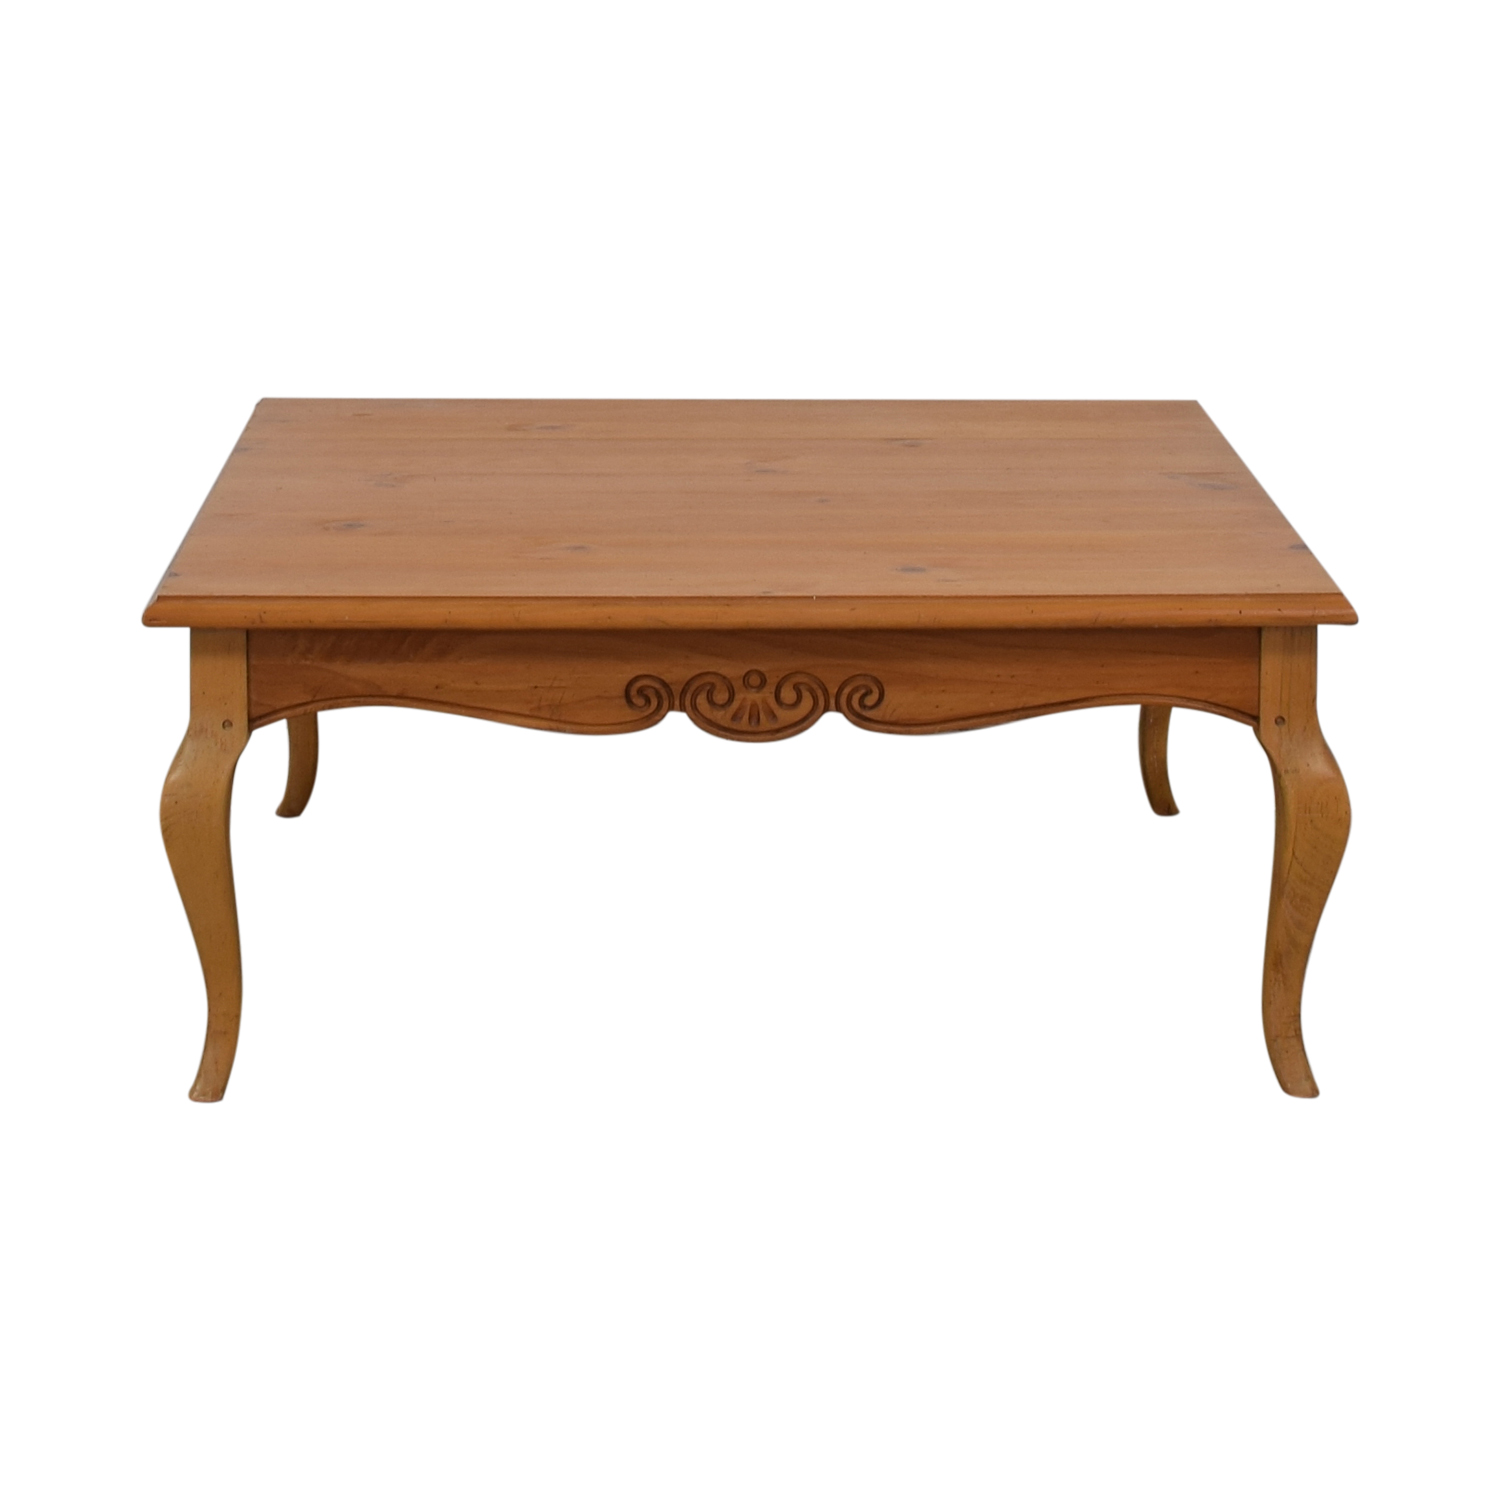 Lane Furniture Lane Furniture Wood Square Coffee Table on sale